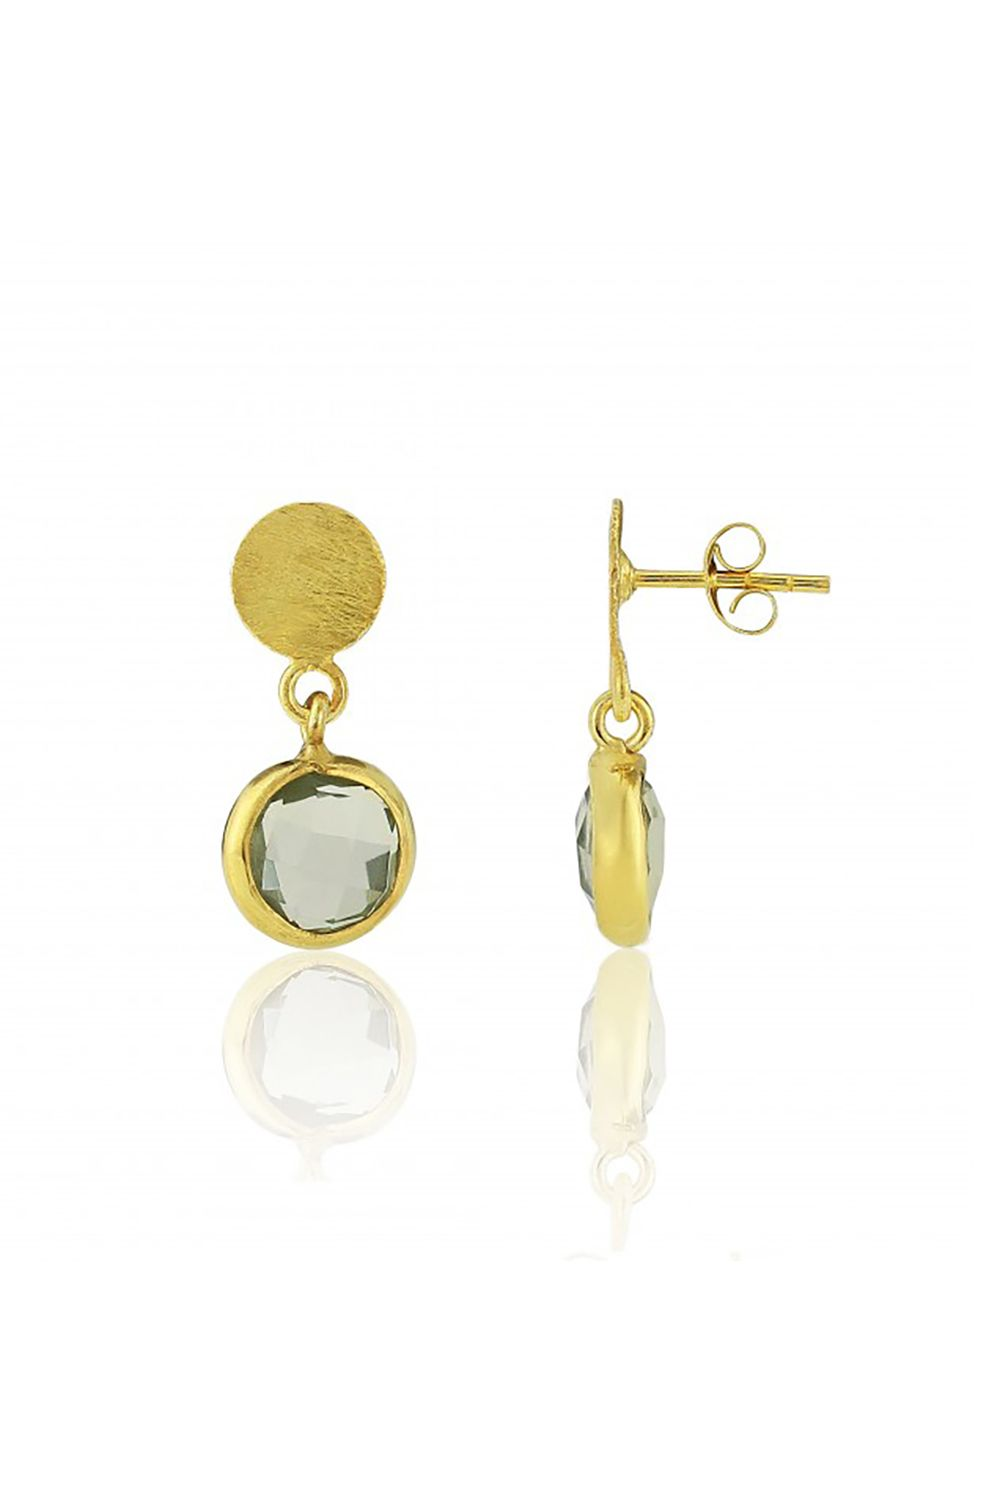 "<p>Just a little chicer than your average drop earrings. </p><p>$50, <a href=""http://www.aureejewellery.com/salina-gold-vermeil-disc-green-amethyst-earrings.html"" target=""_blank"">aureejewellery.com</a>.</p>"